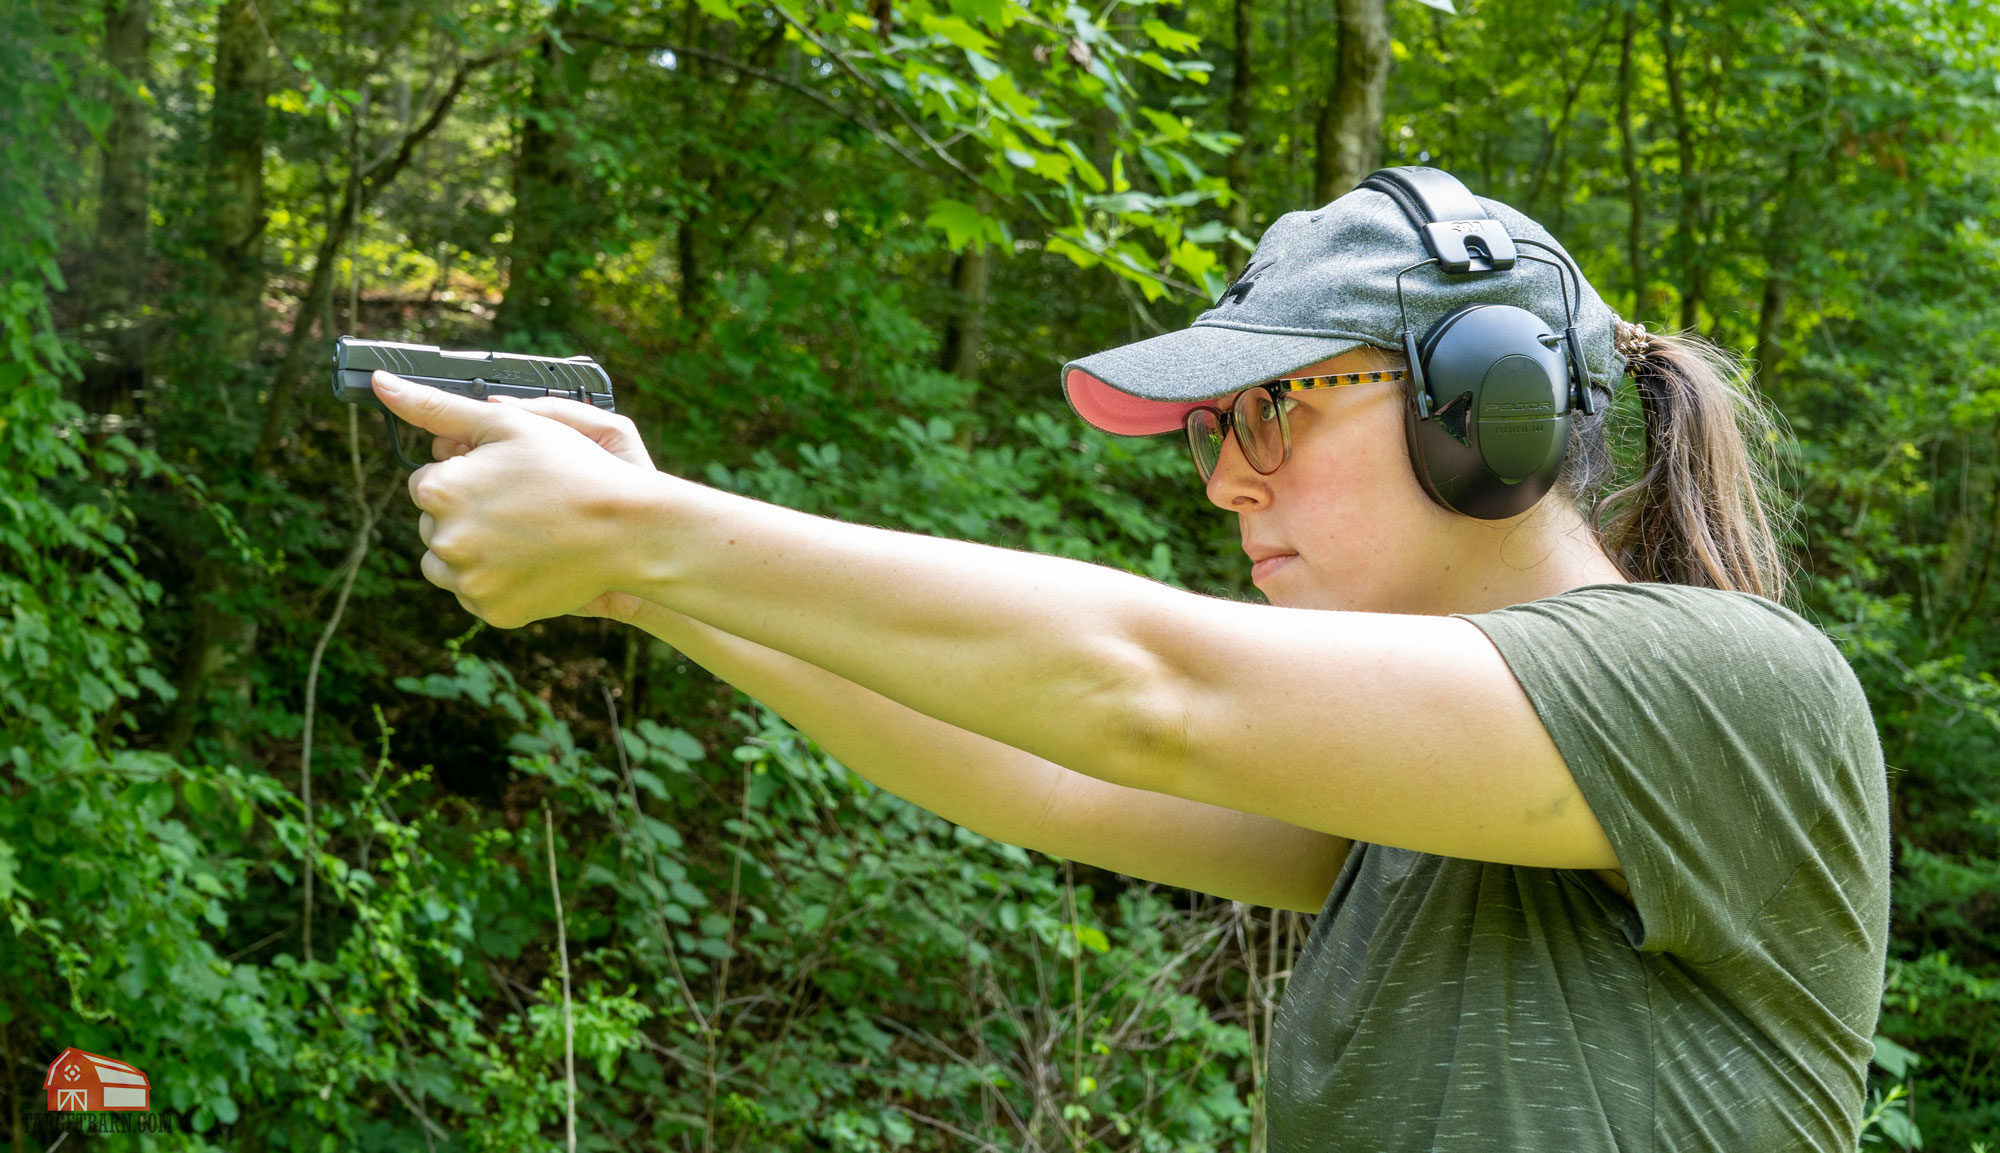 mckenzie shooting a ruger lcp 2